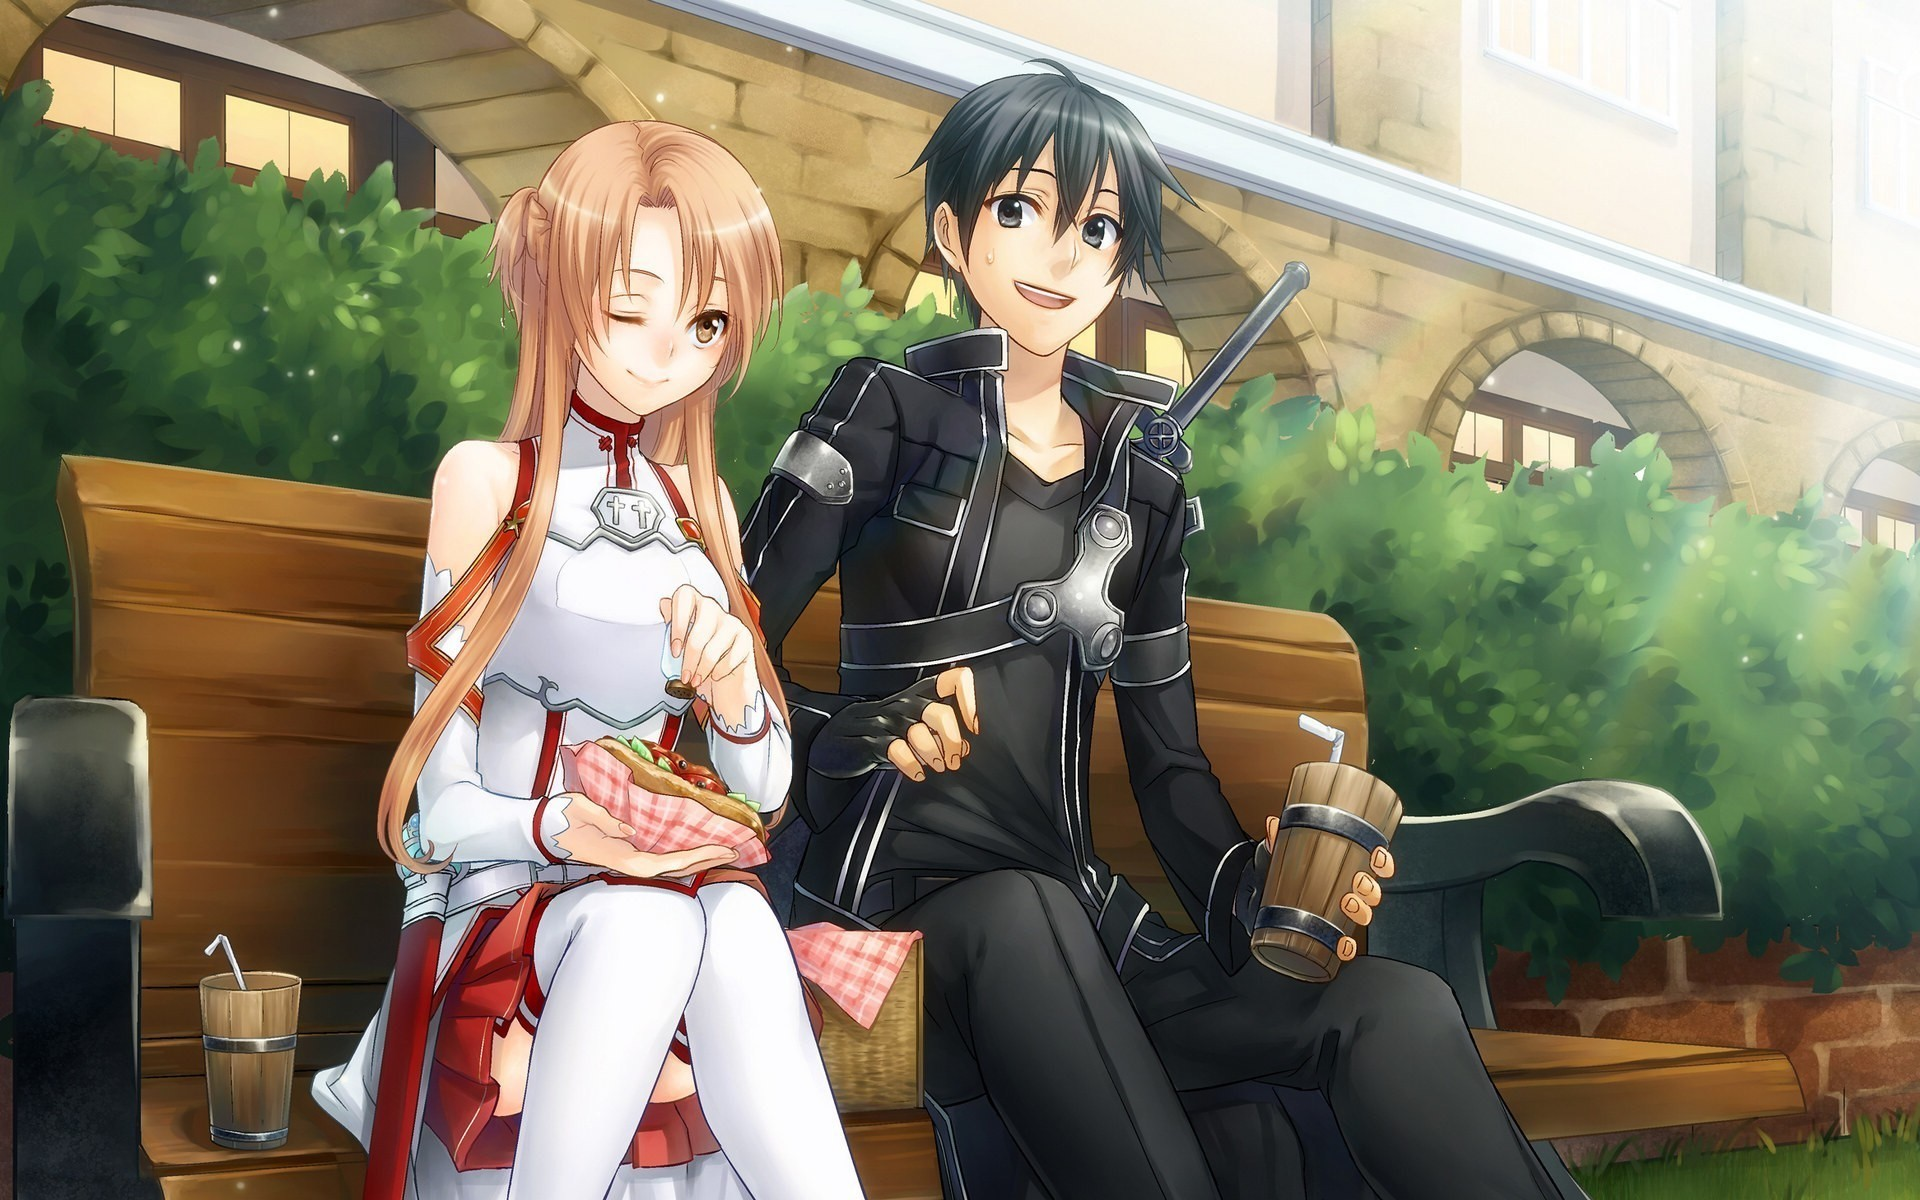 Res: 1920x1200, anime couple wallpaper hd #622857